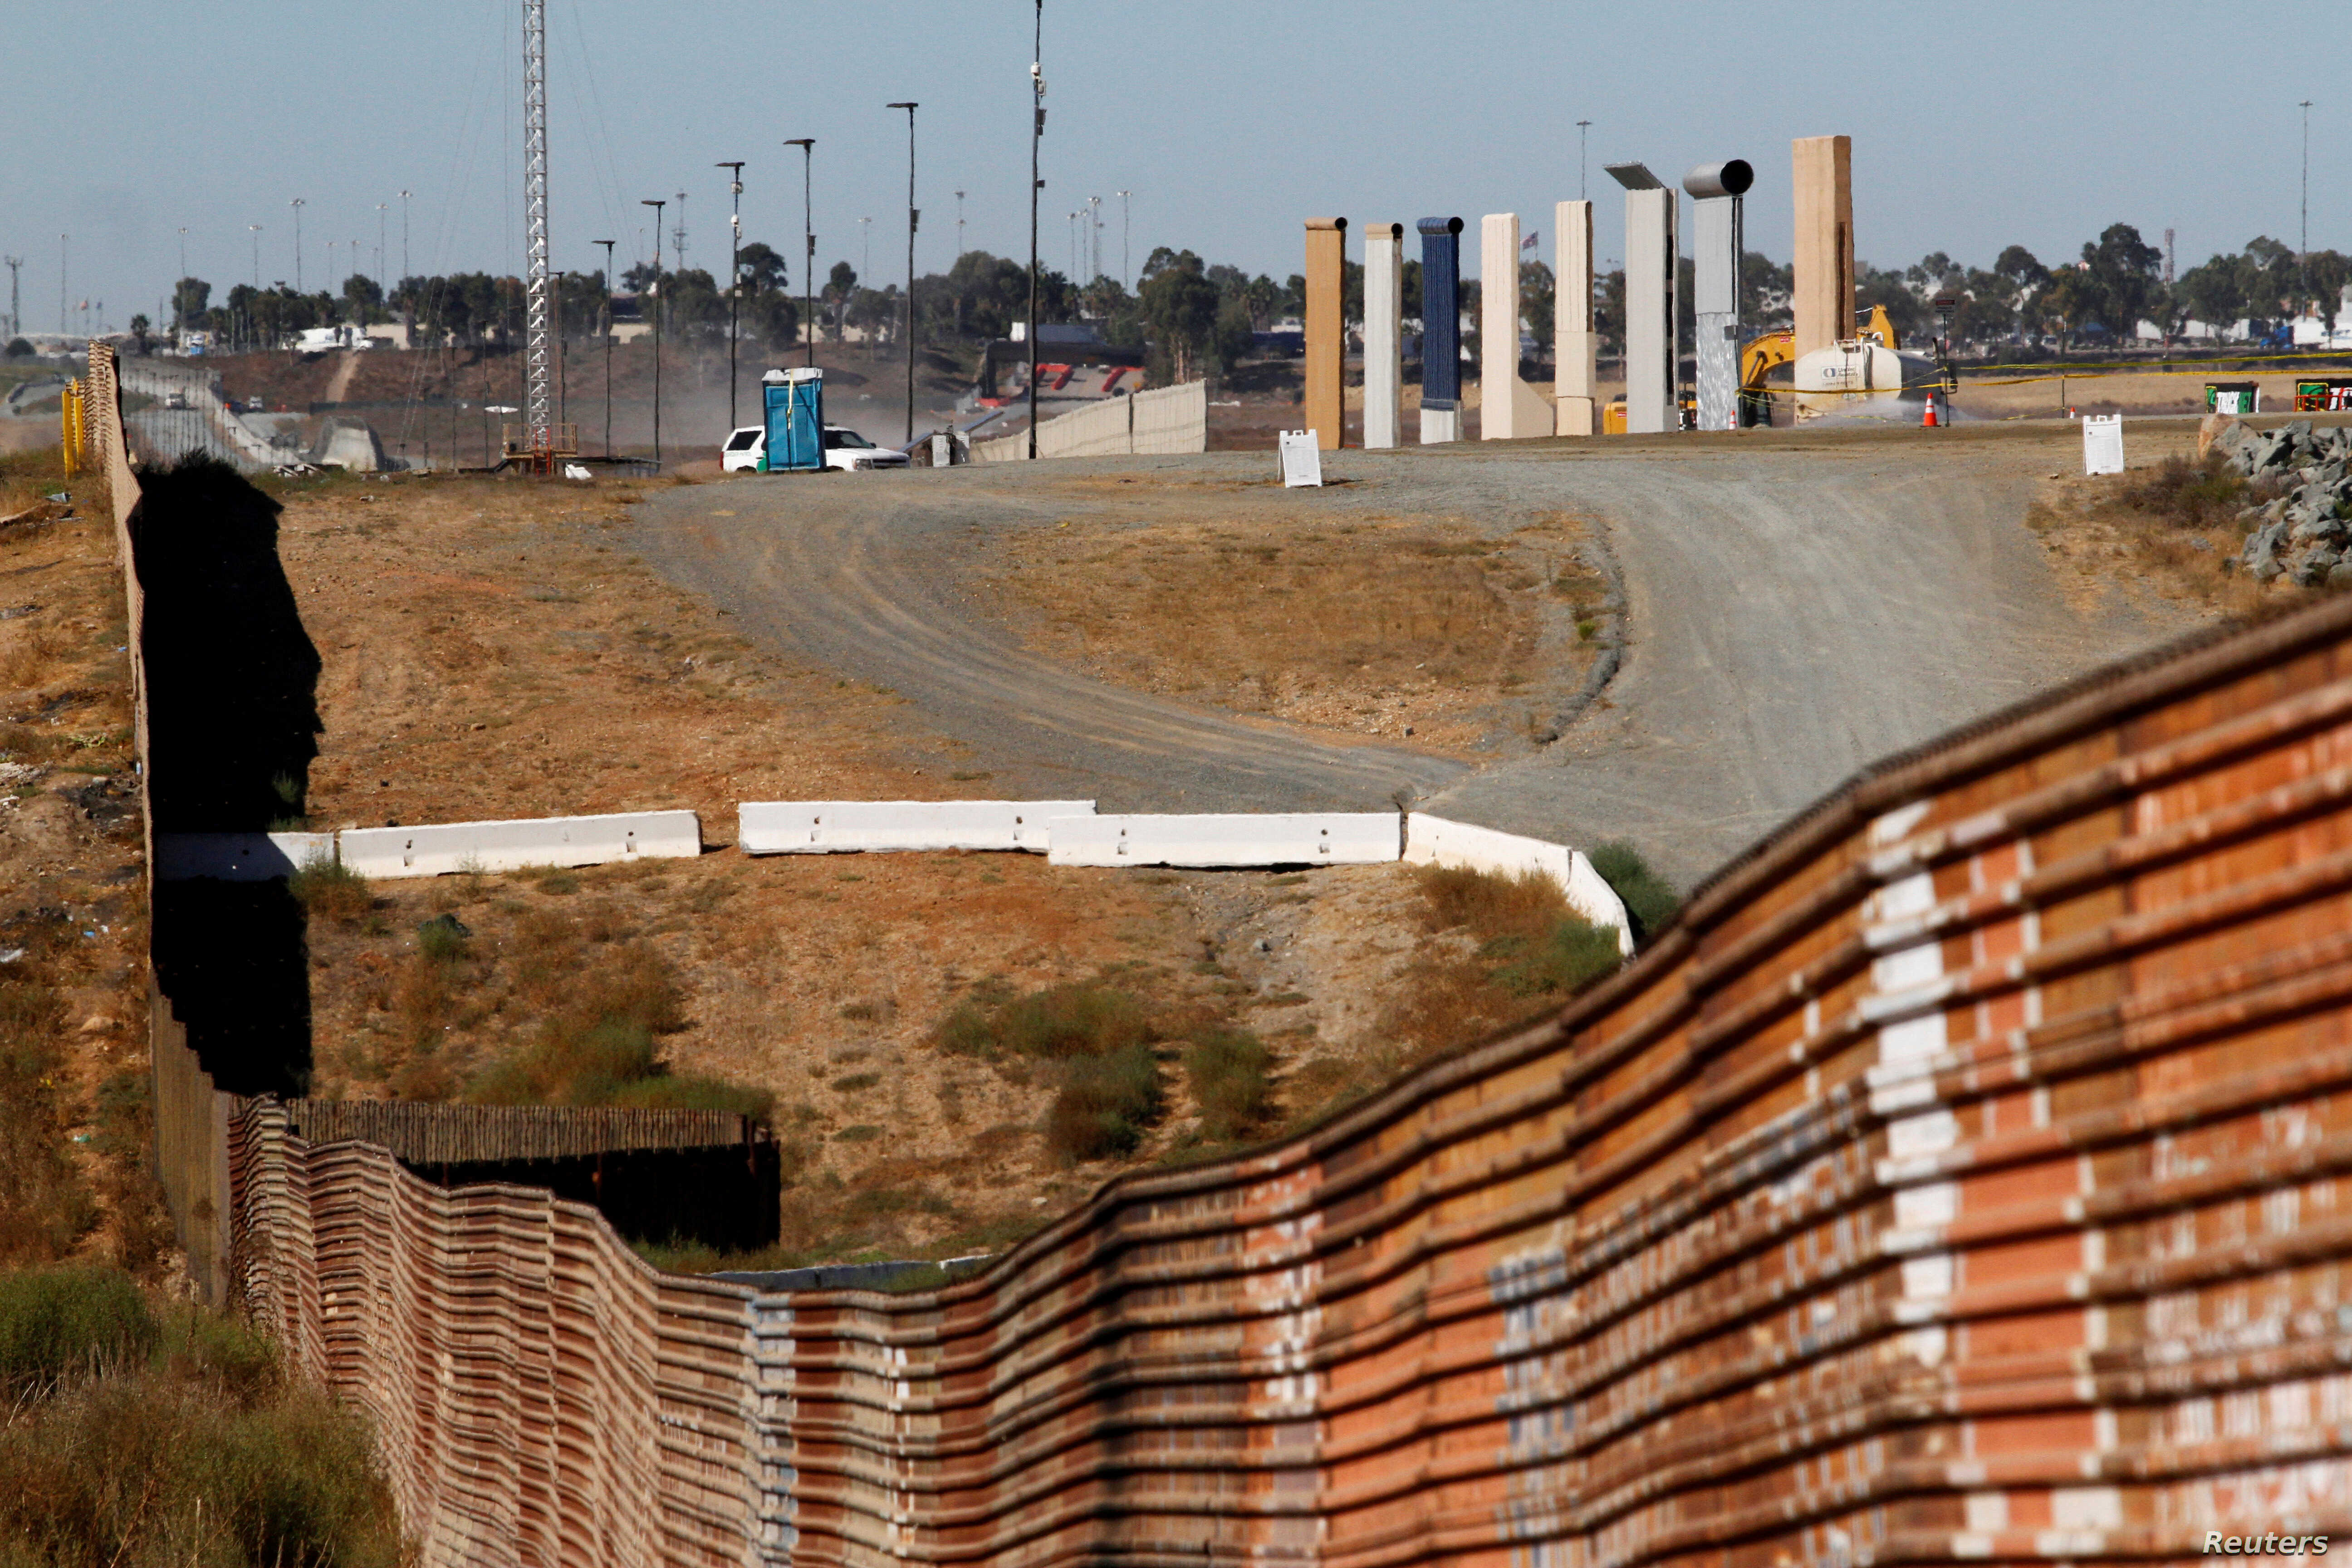 FILE: Prototypes for U.S. President Donald Trump's border wall with Mexico are shown near completion behind the current border fence, in this picture taken from the Mexican side of the border, in Tijuana, Oct. 23, 2017.